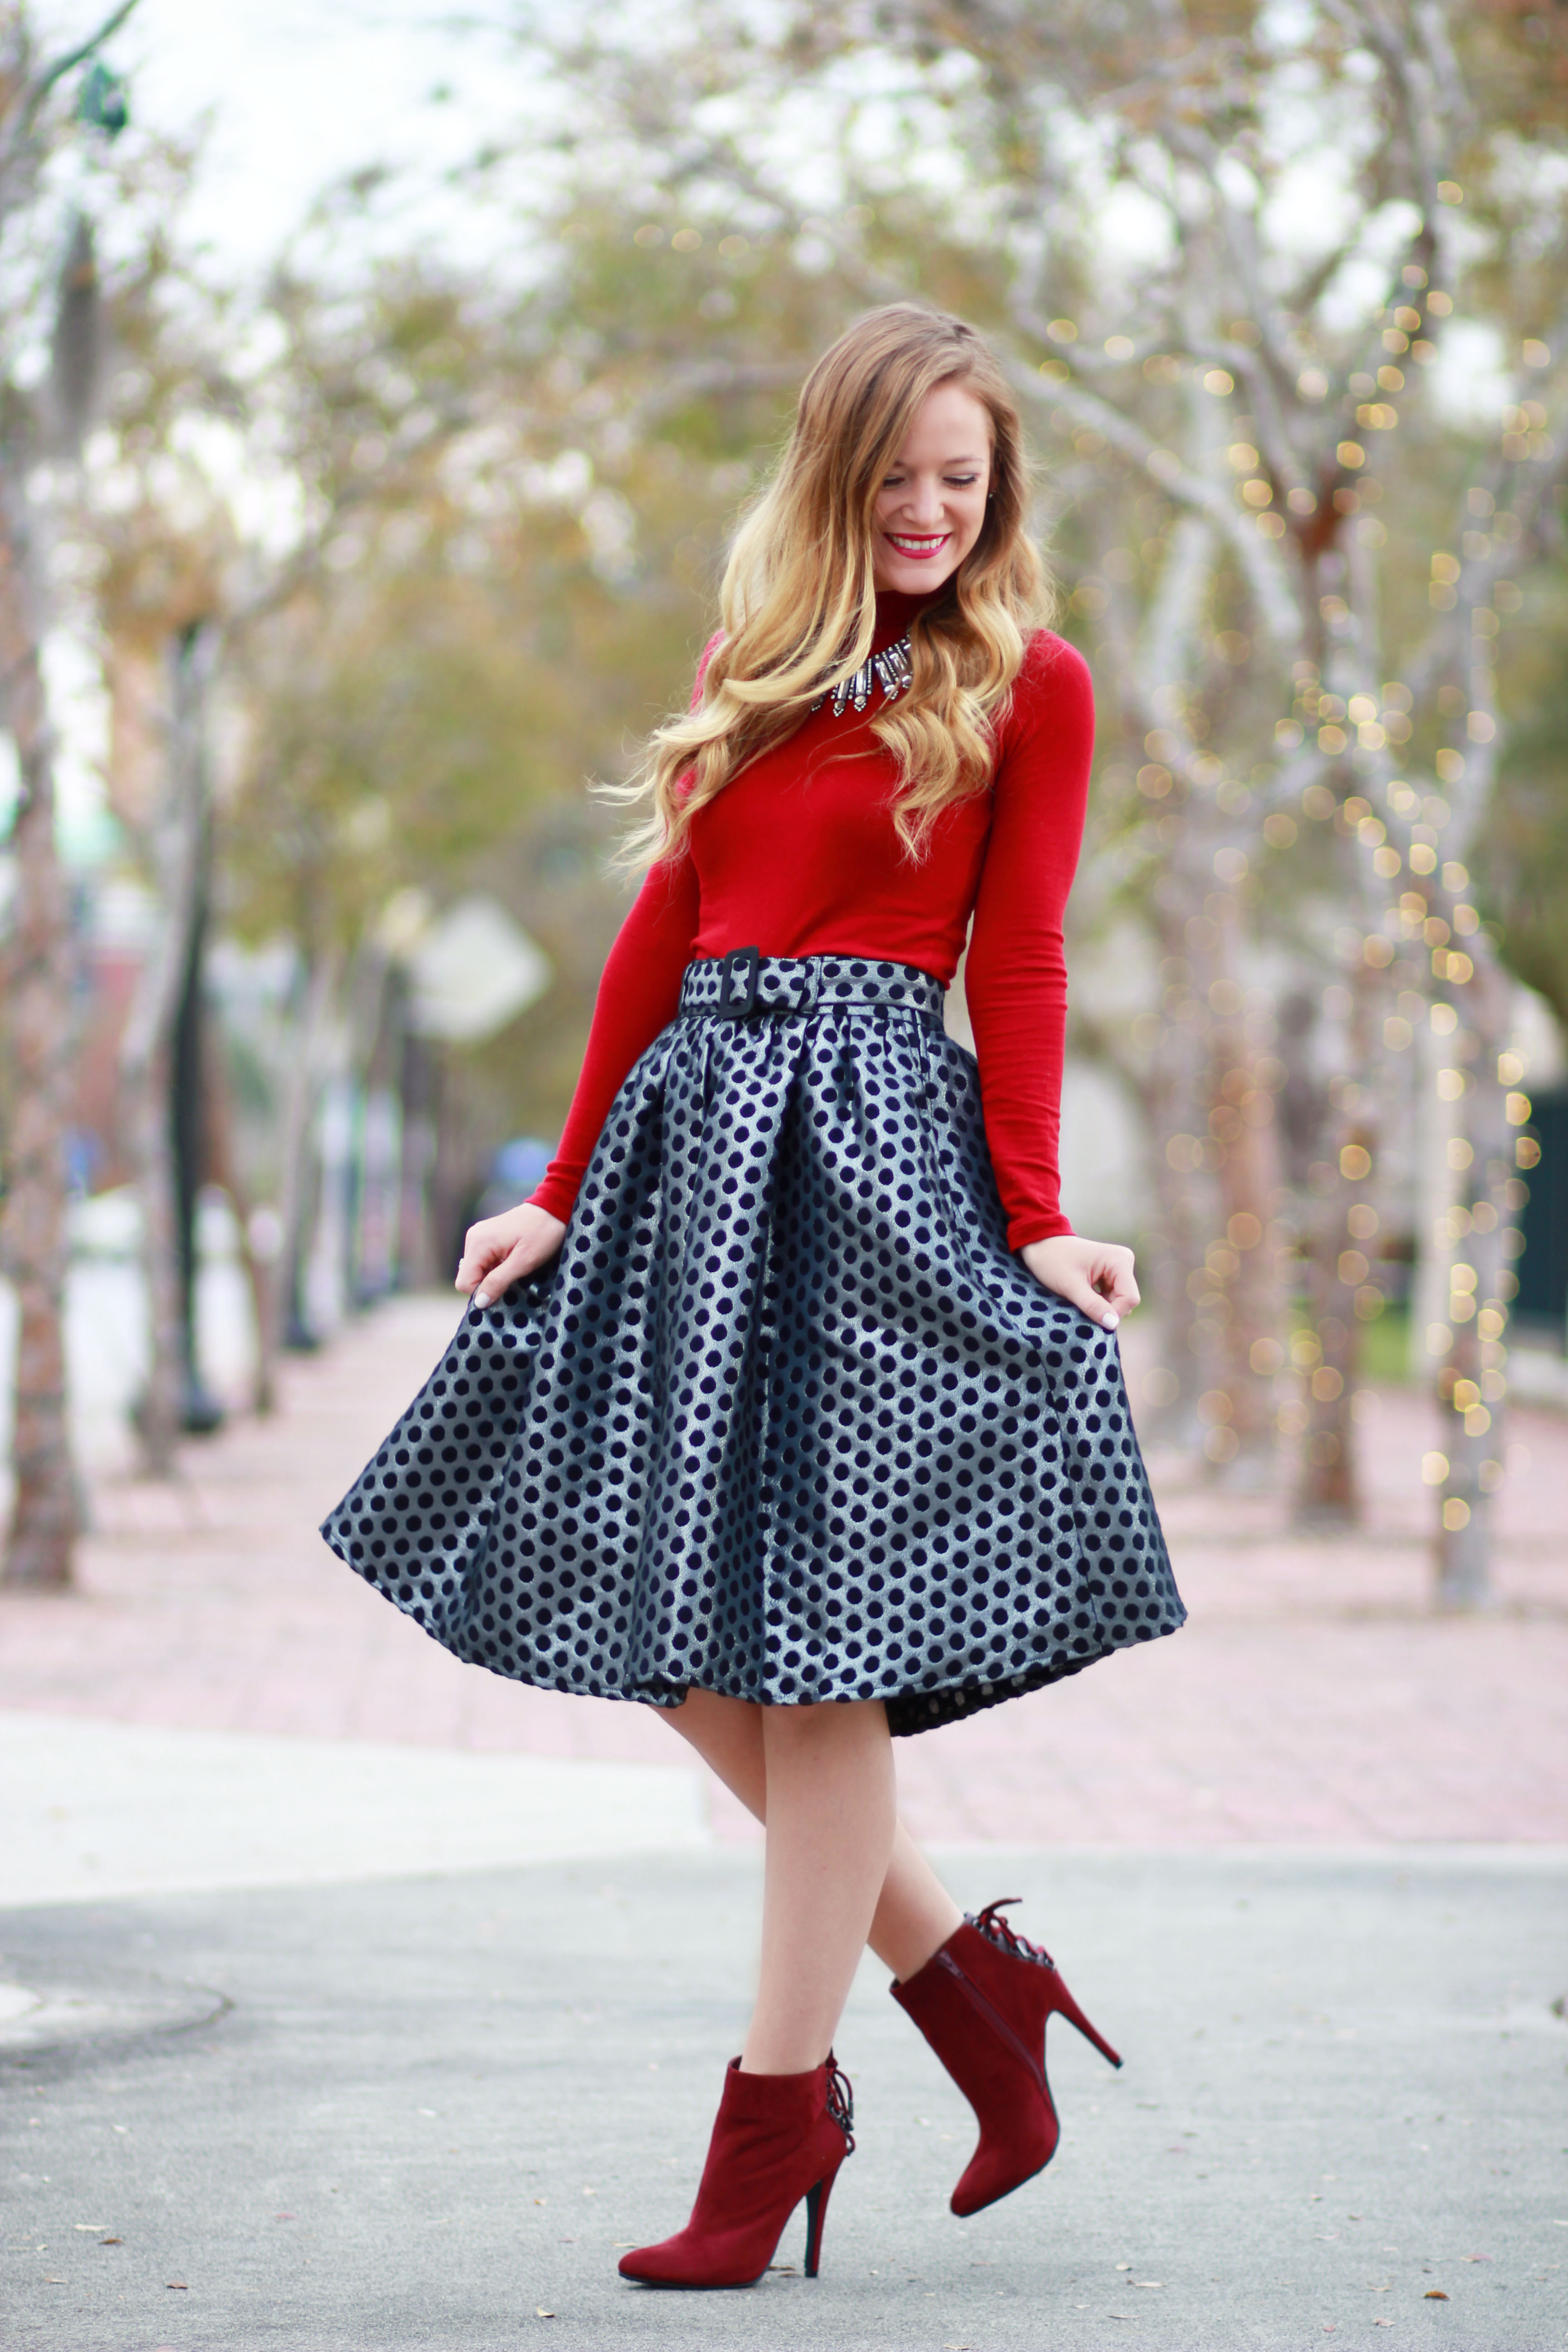 orlando, florida fashion blogger styles eshakti skirt, forever 21 top, sugarpair booties for a holiday outfit